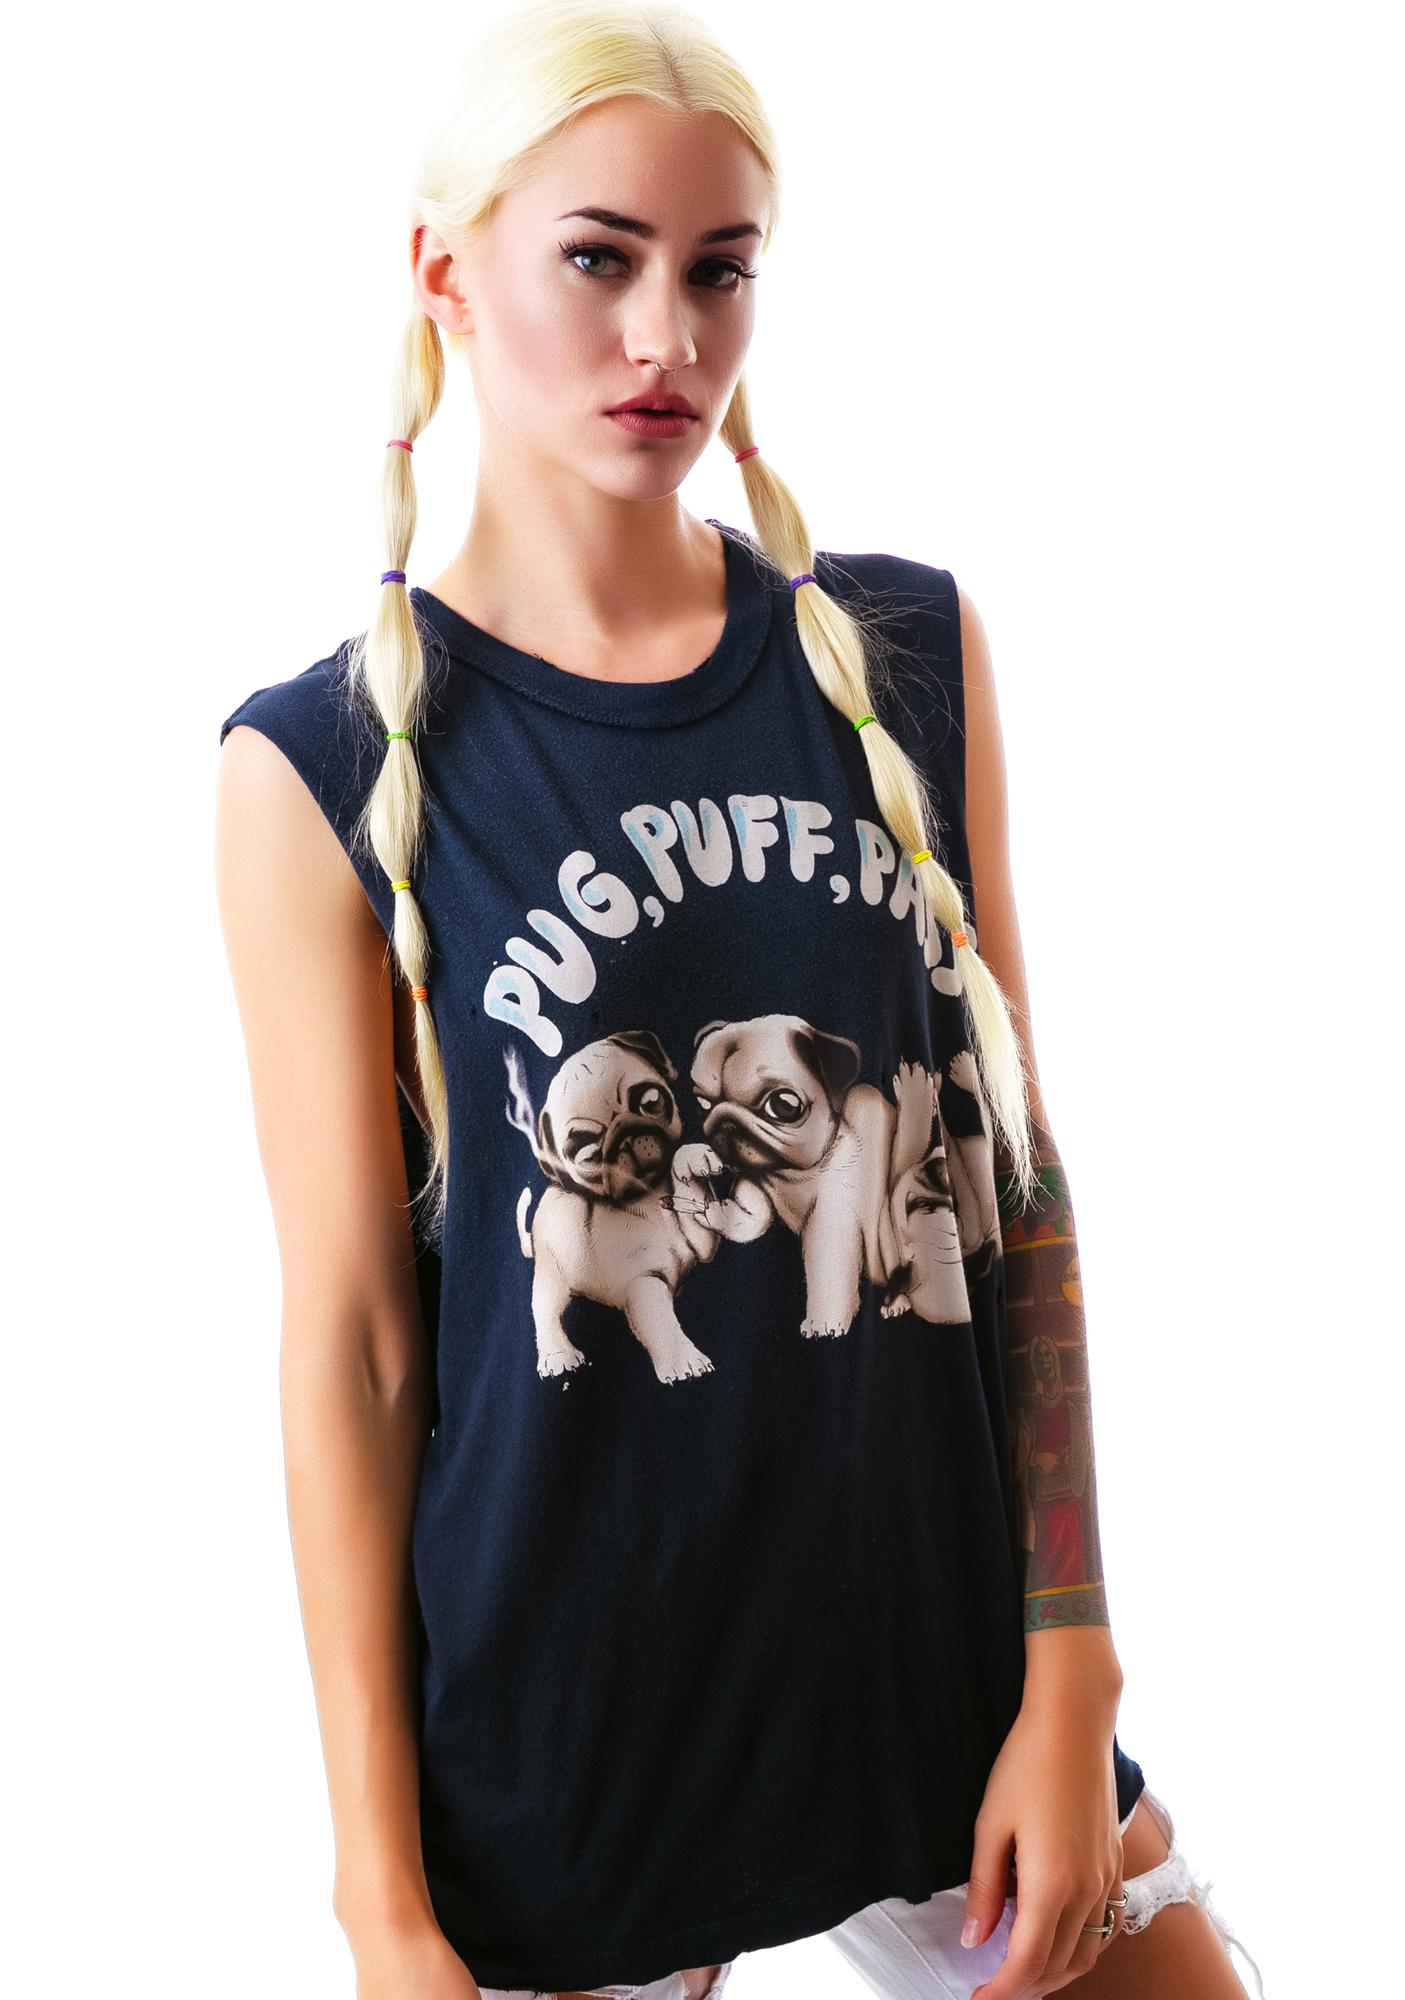 UNIF Pug, Puff, Pass Sleeveless Tee